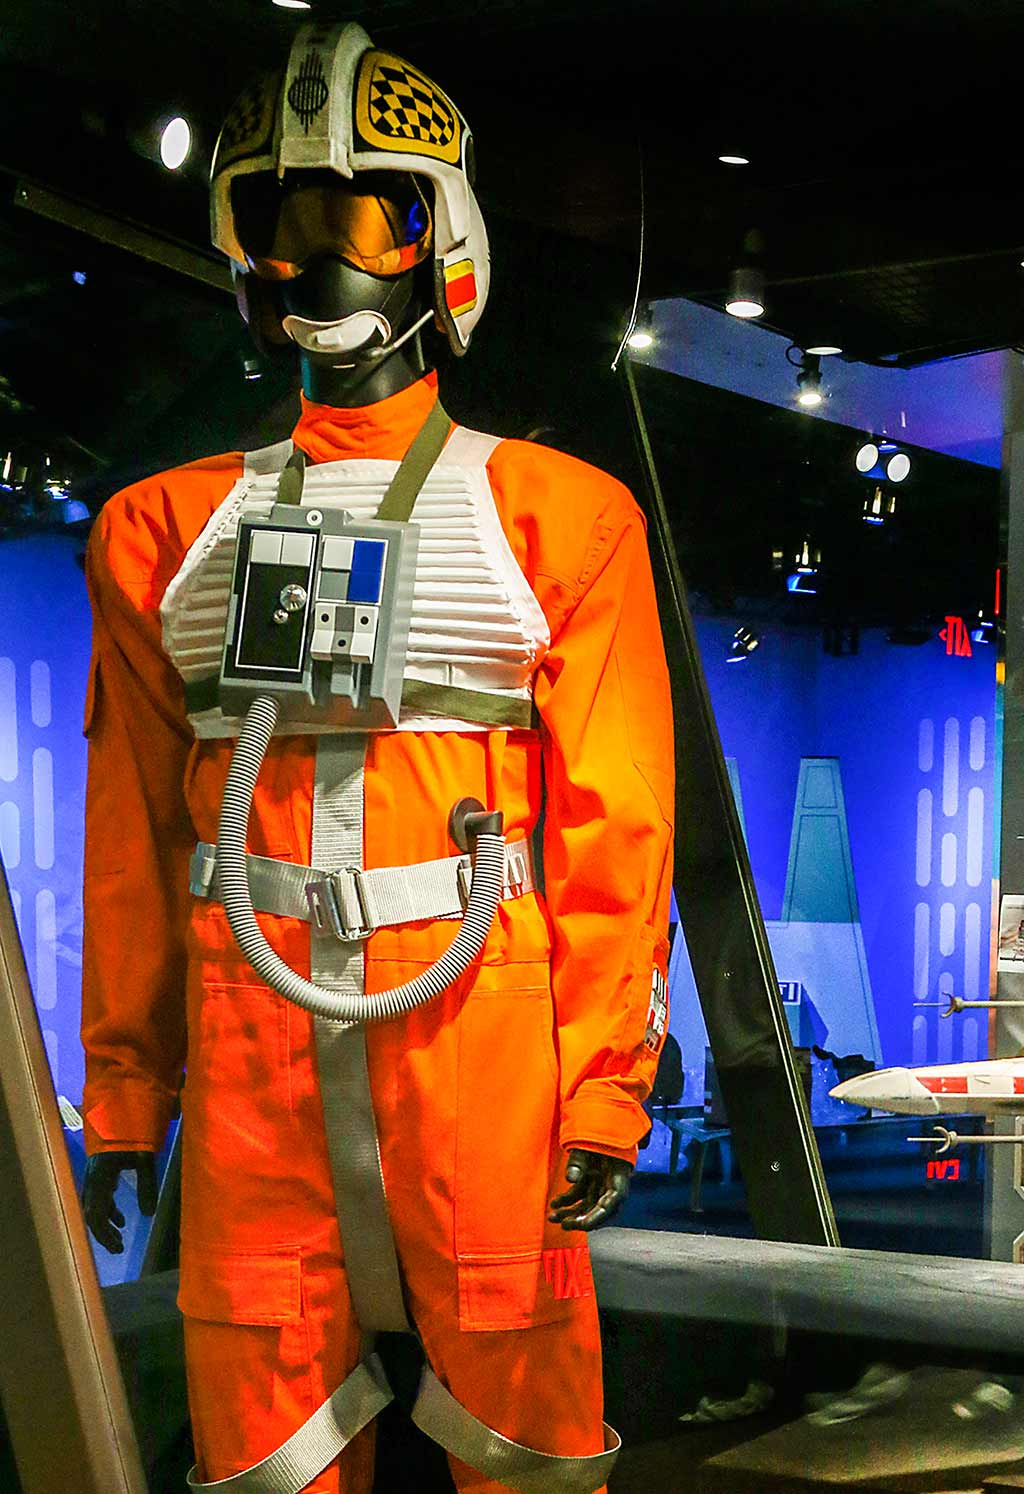 Star Wars Rebel Pilot flight suit